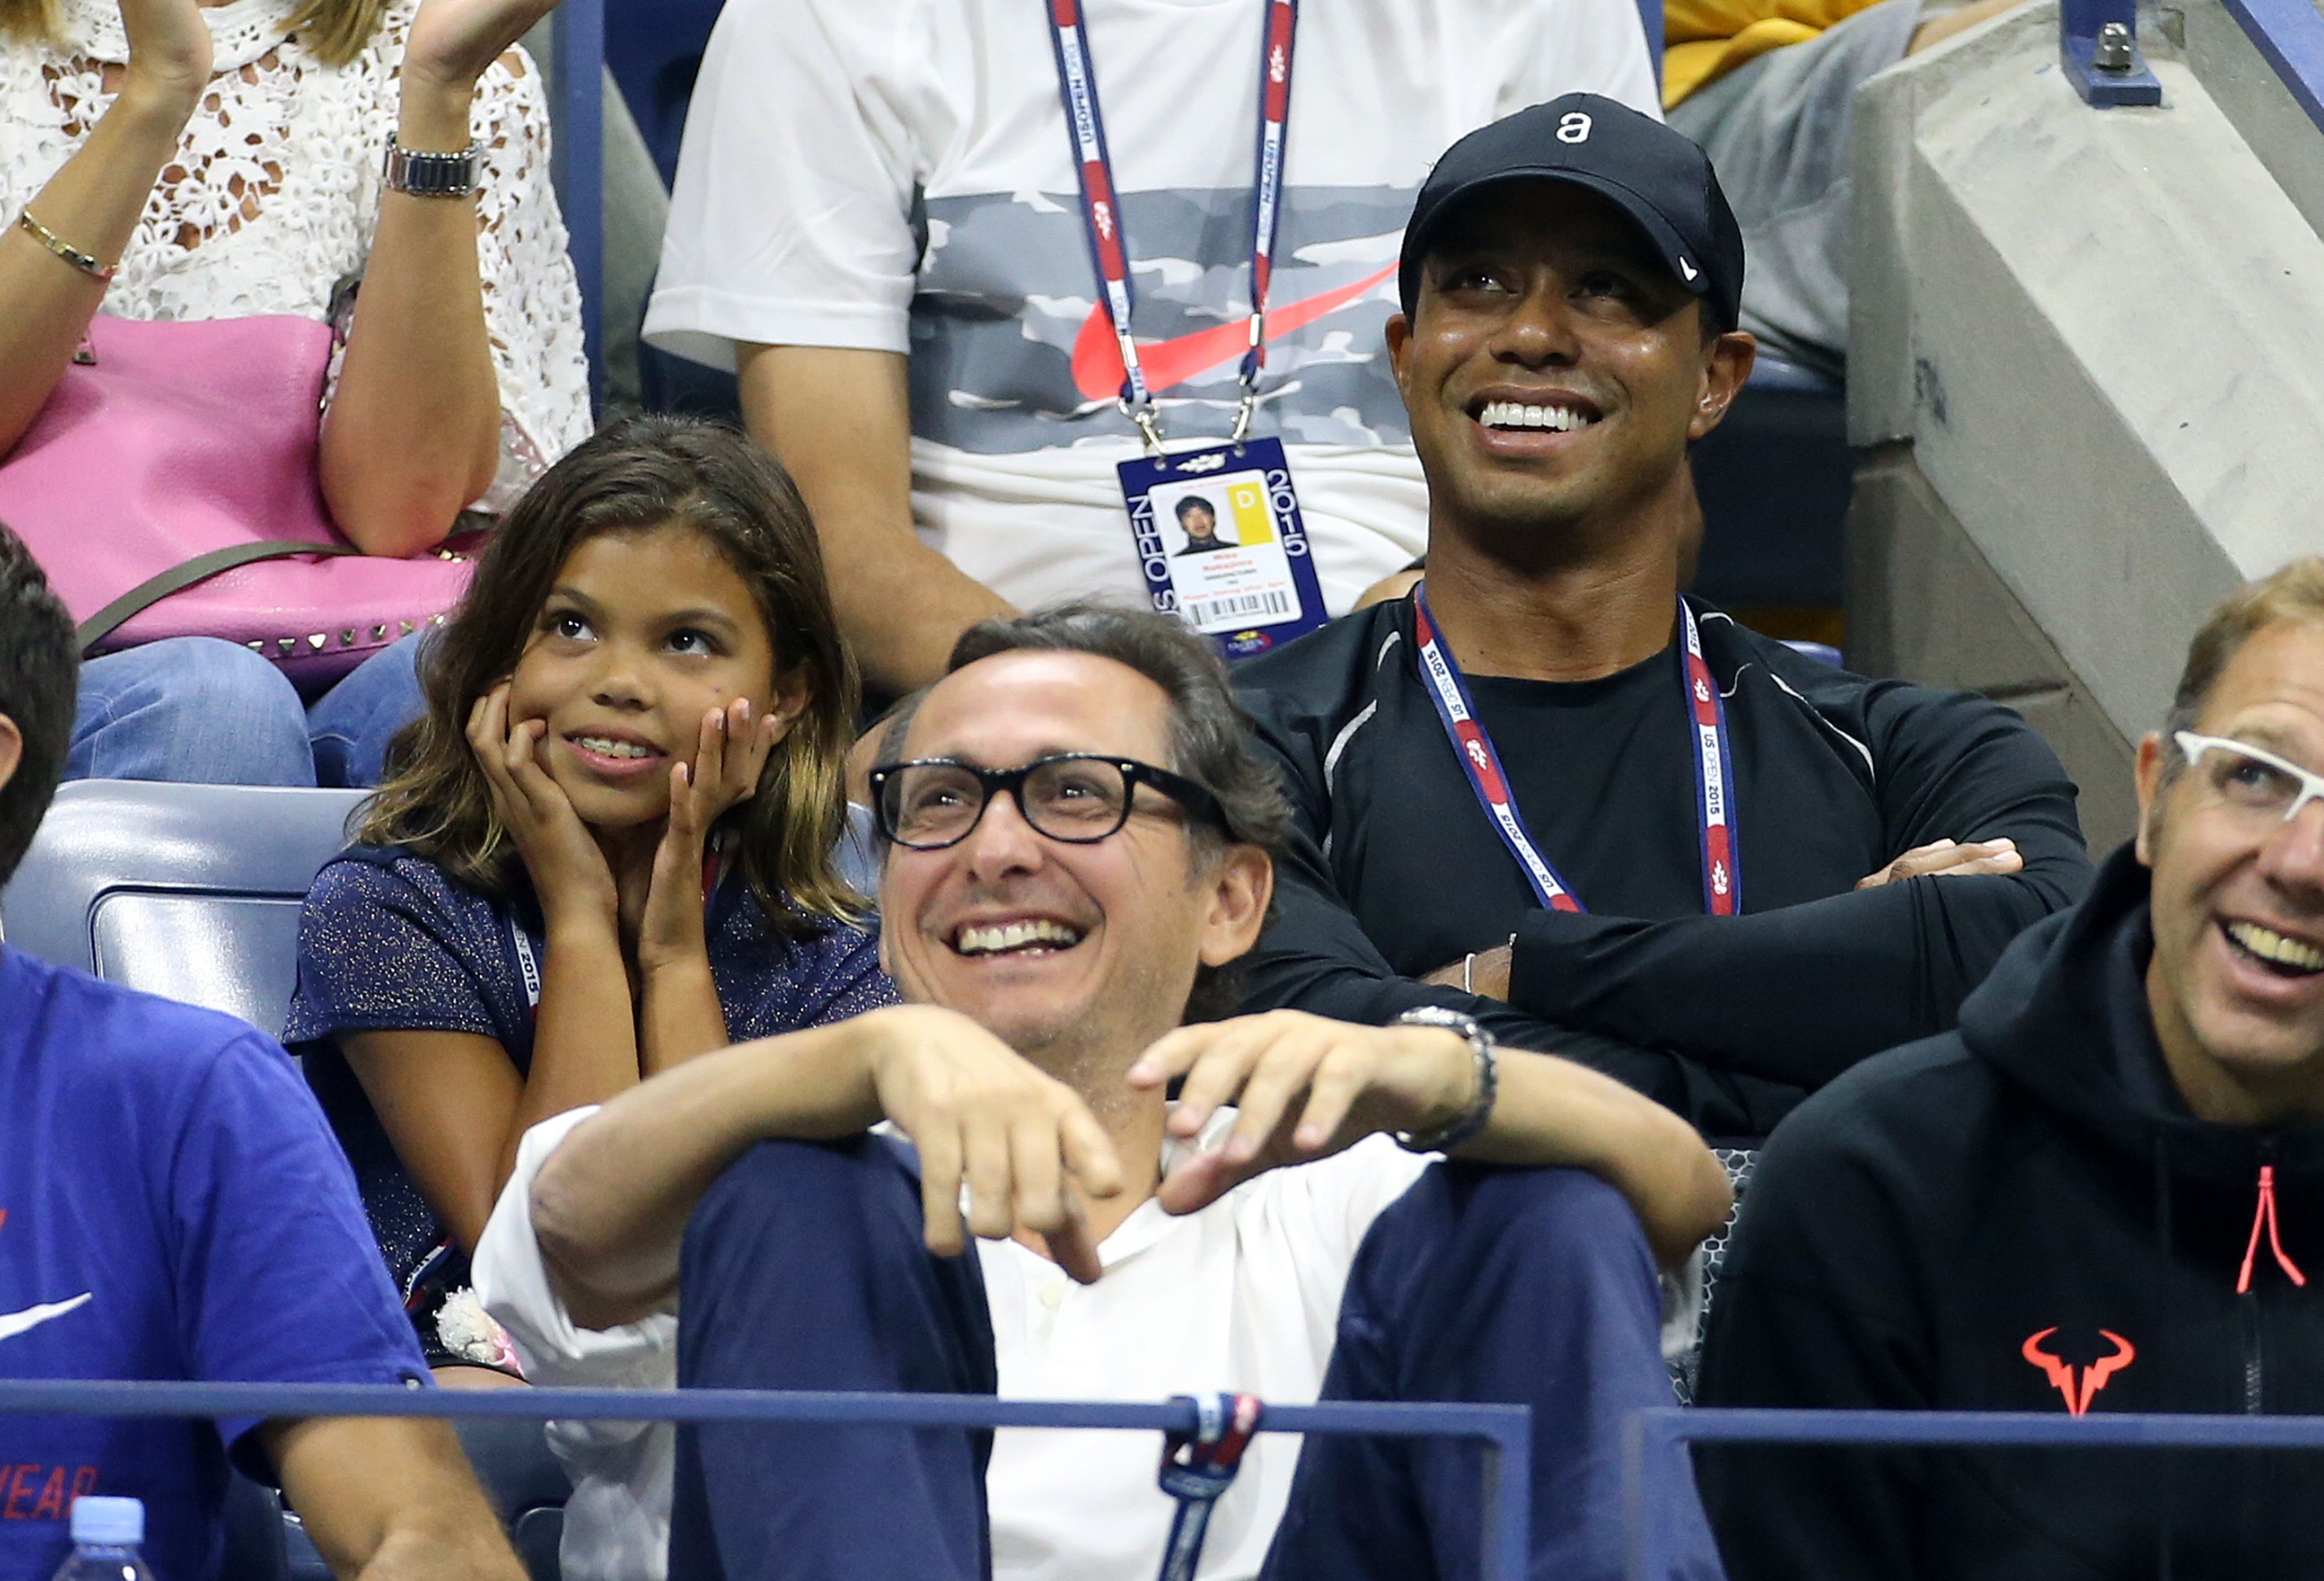 Tiger Woods and his daughter Sam Woods at a 2015 US Open tennis match